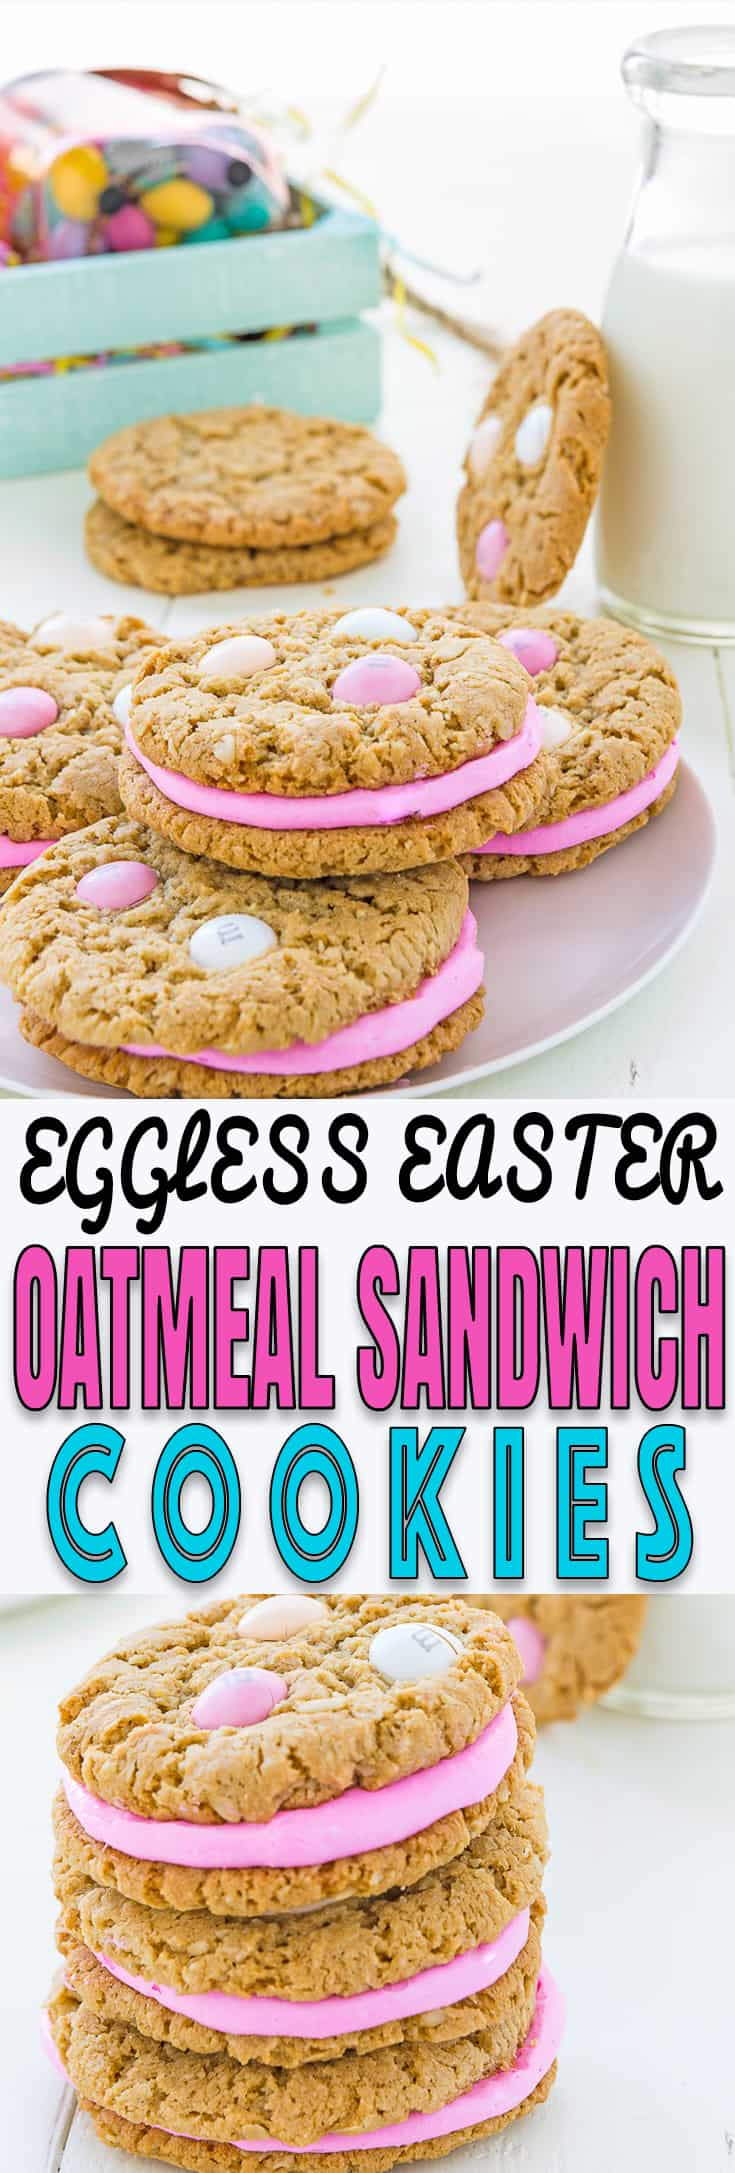 These Eggless Easter Oatmeal Sandwich Cookies are almost too cute to eat, but who can resist easy to make oatmeal cookies, delicious frosting, and M&Ms? The perfect Easter treat!! http://mommyshomecooking.com